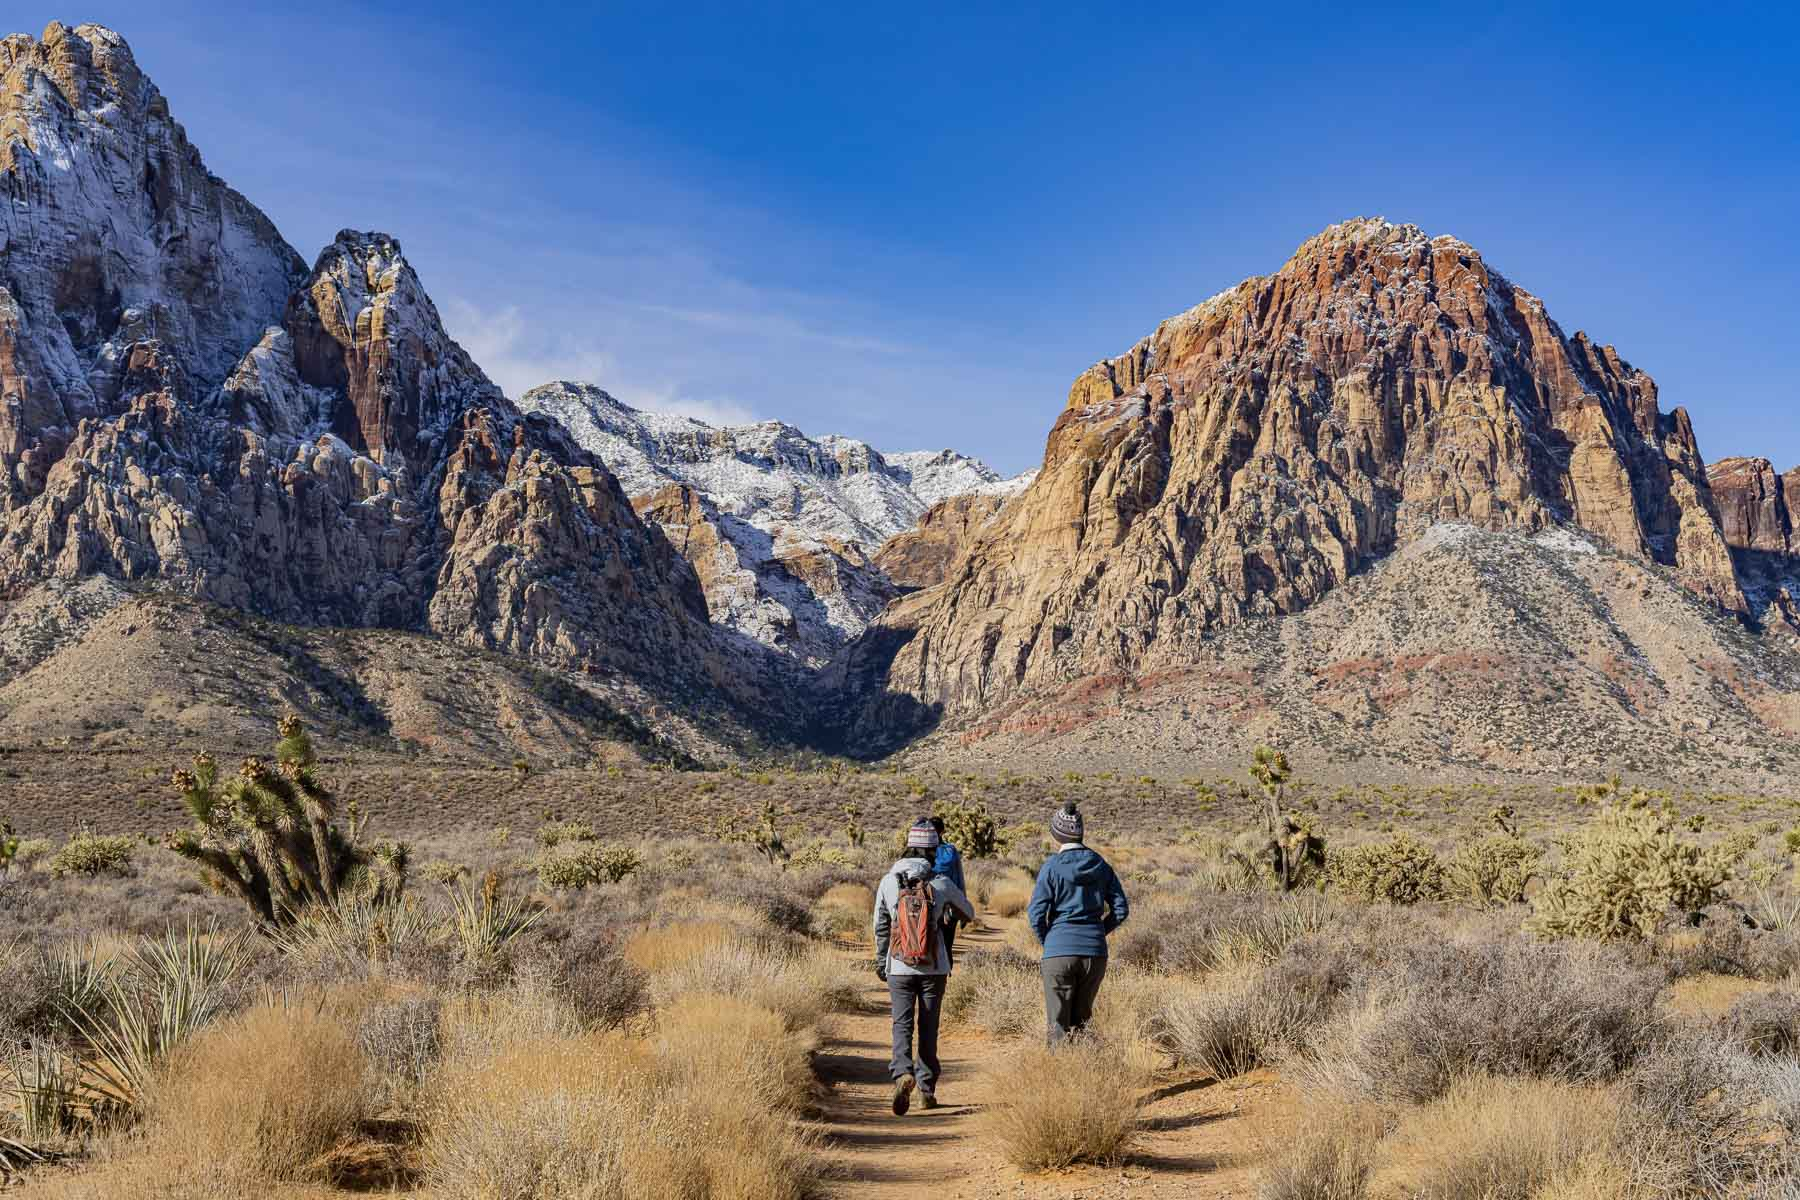 Hikers in Red Rock Canyon, Nevada